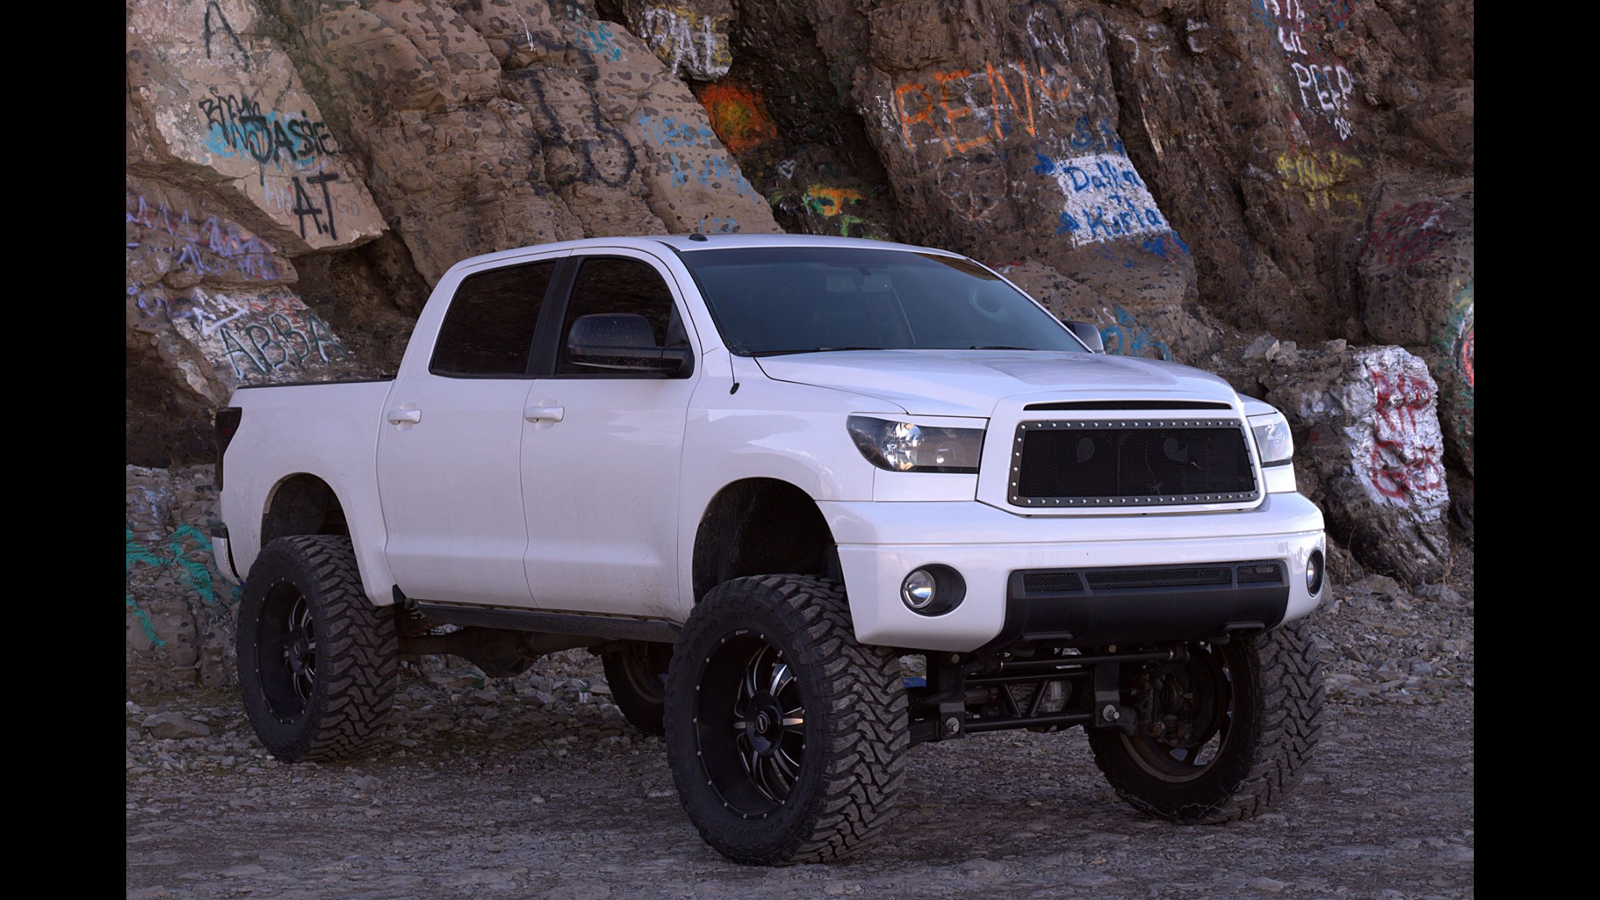 Trd Pro Tundra >> nicely modified 2010 Toyota Tundra custom for sale